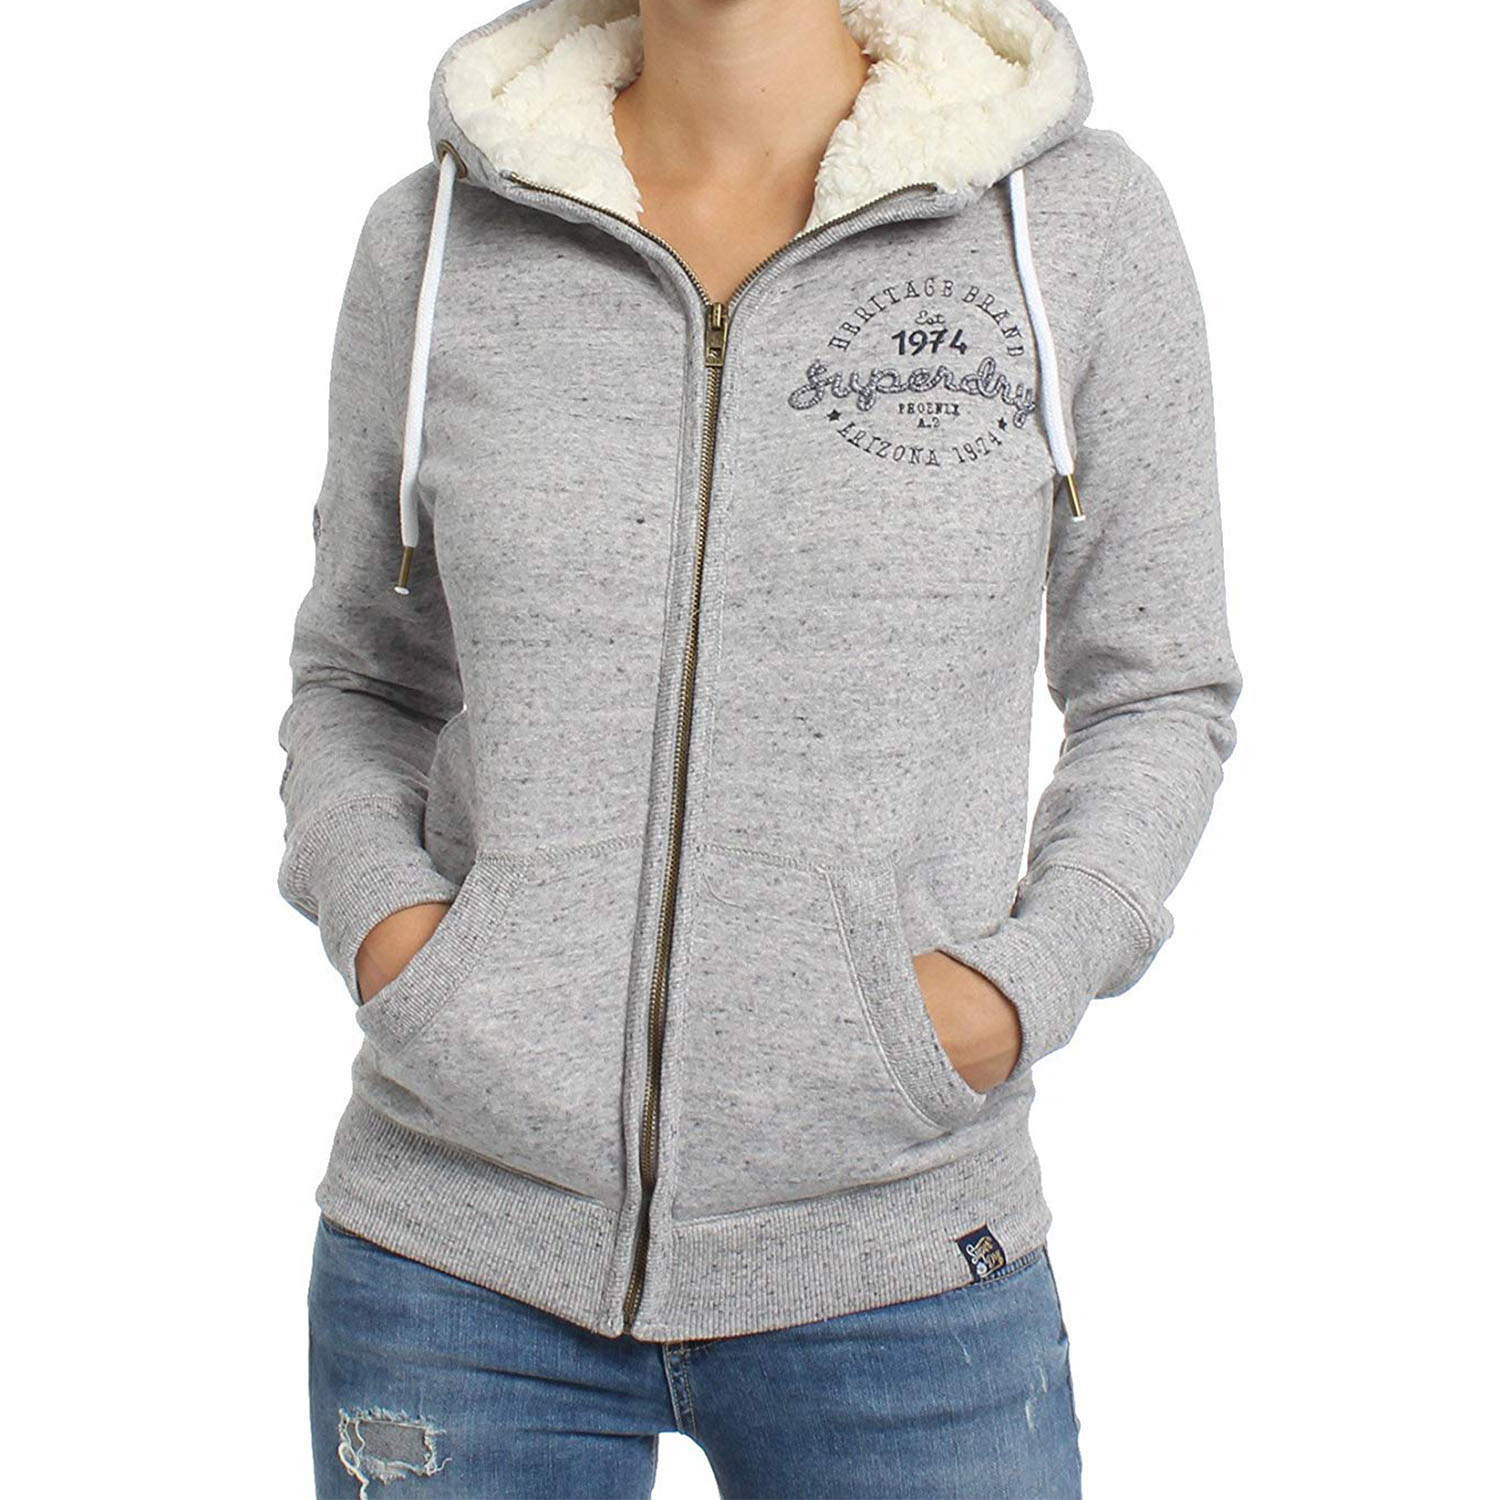 Superdry Aria applique Hoodie W ( G20002AR-WO5 ) ρούχα    γυναίκα   sweaters   hoodies   ζακέτες